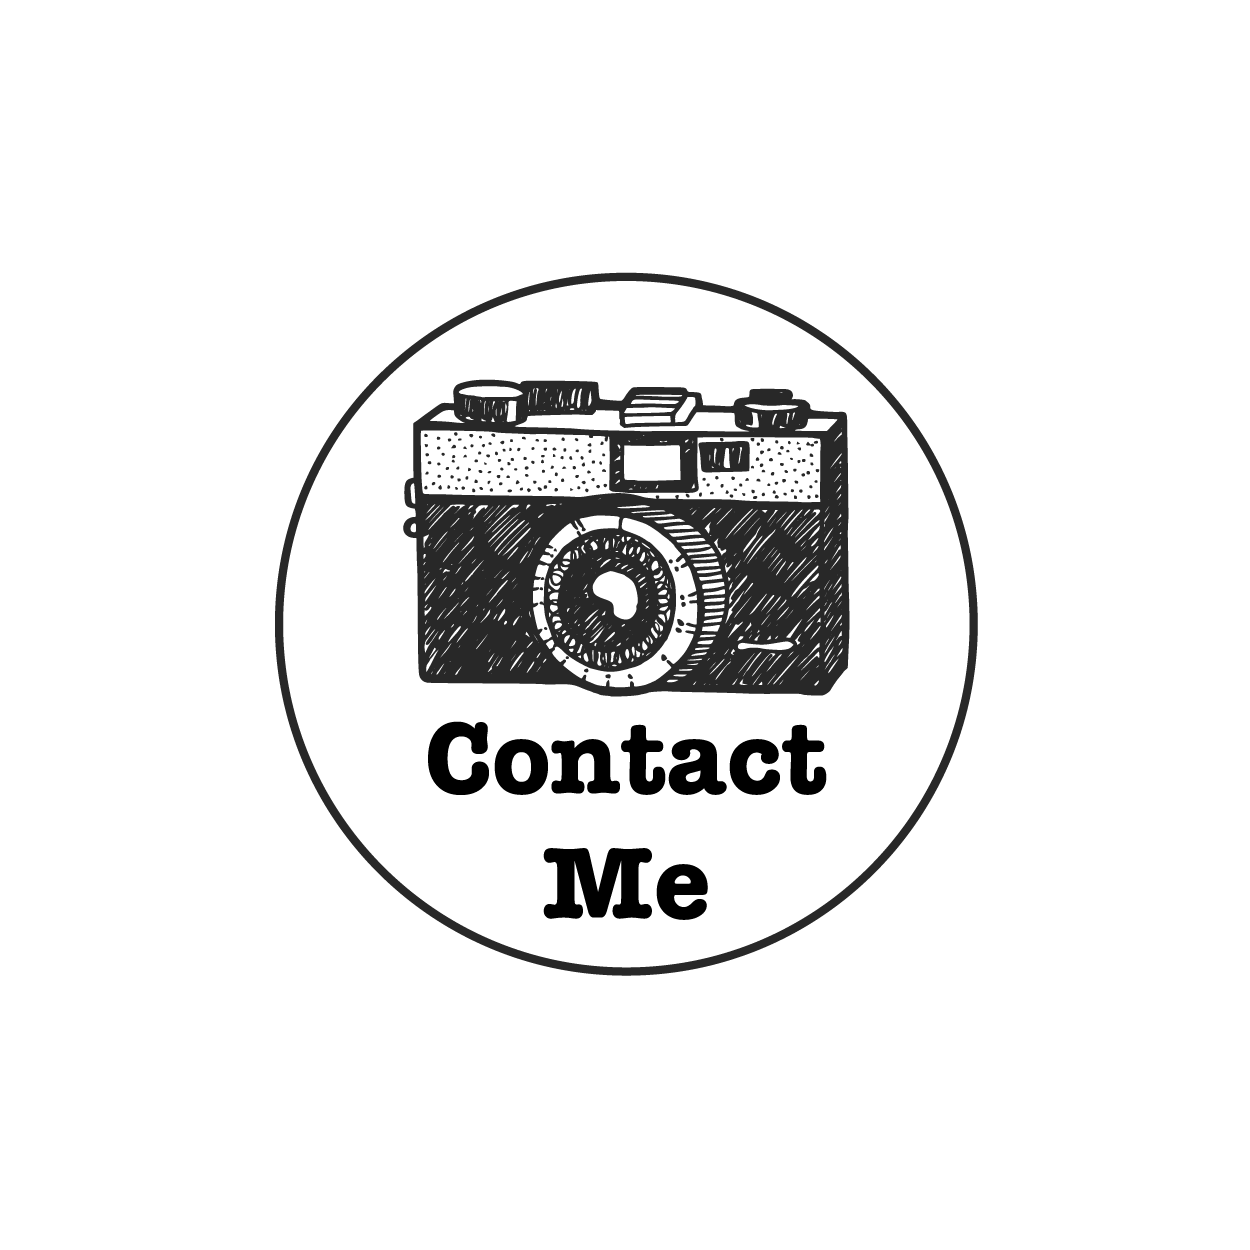 ContactMe-01.png